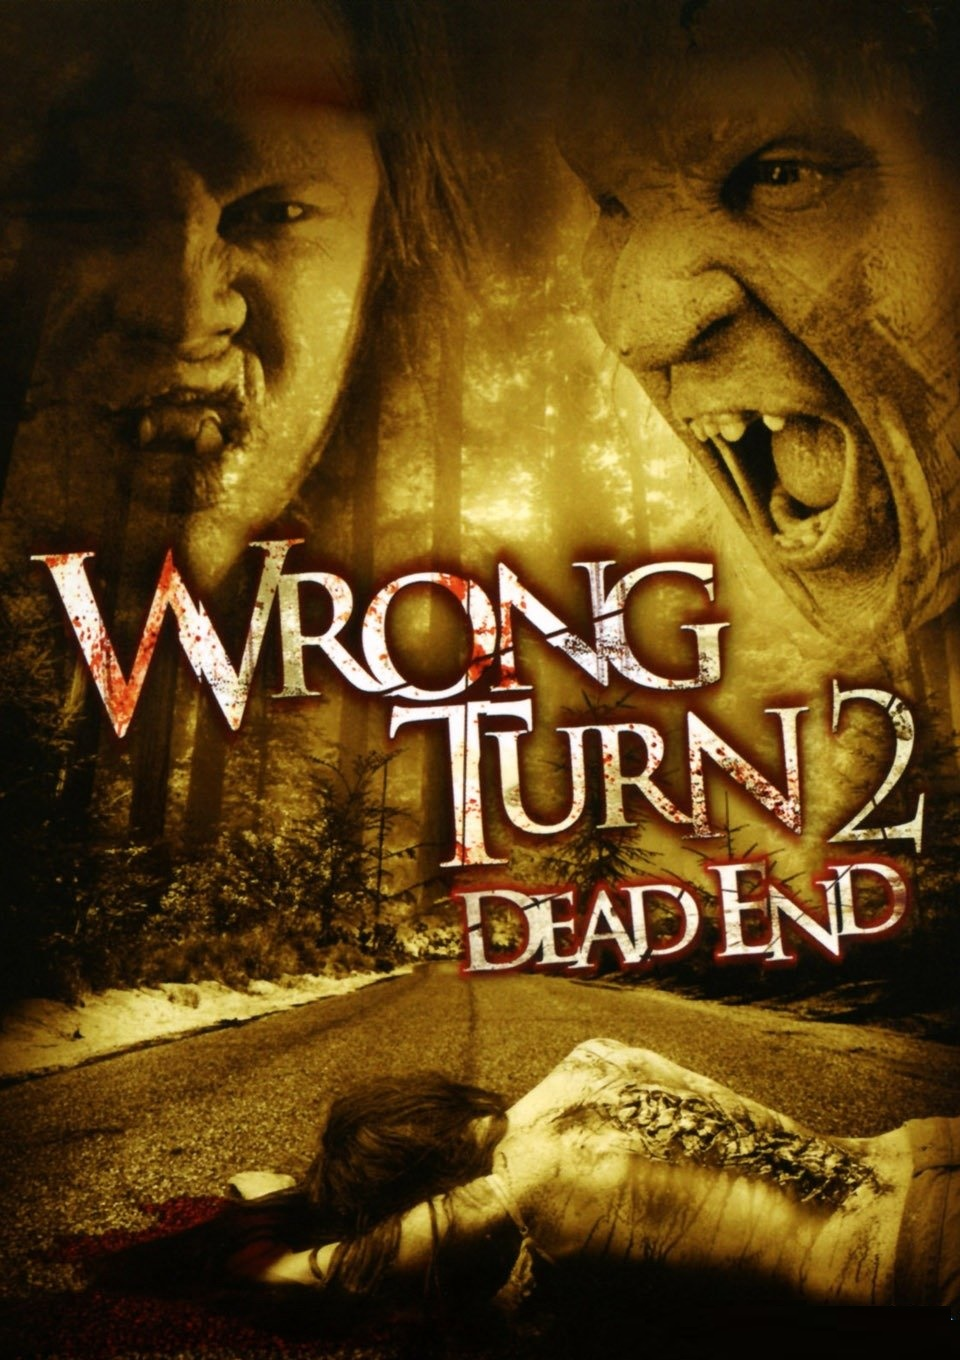 John's Horror Corner: Wrong Turn 2: Dead End (2007), an over